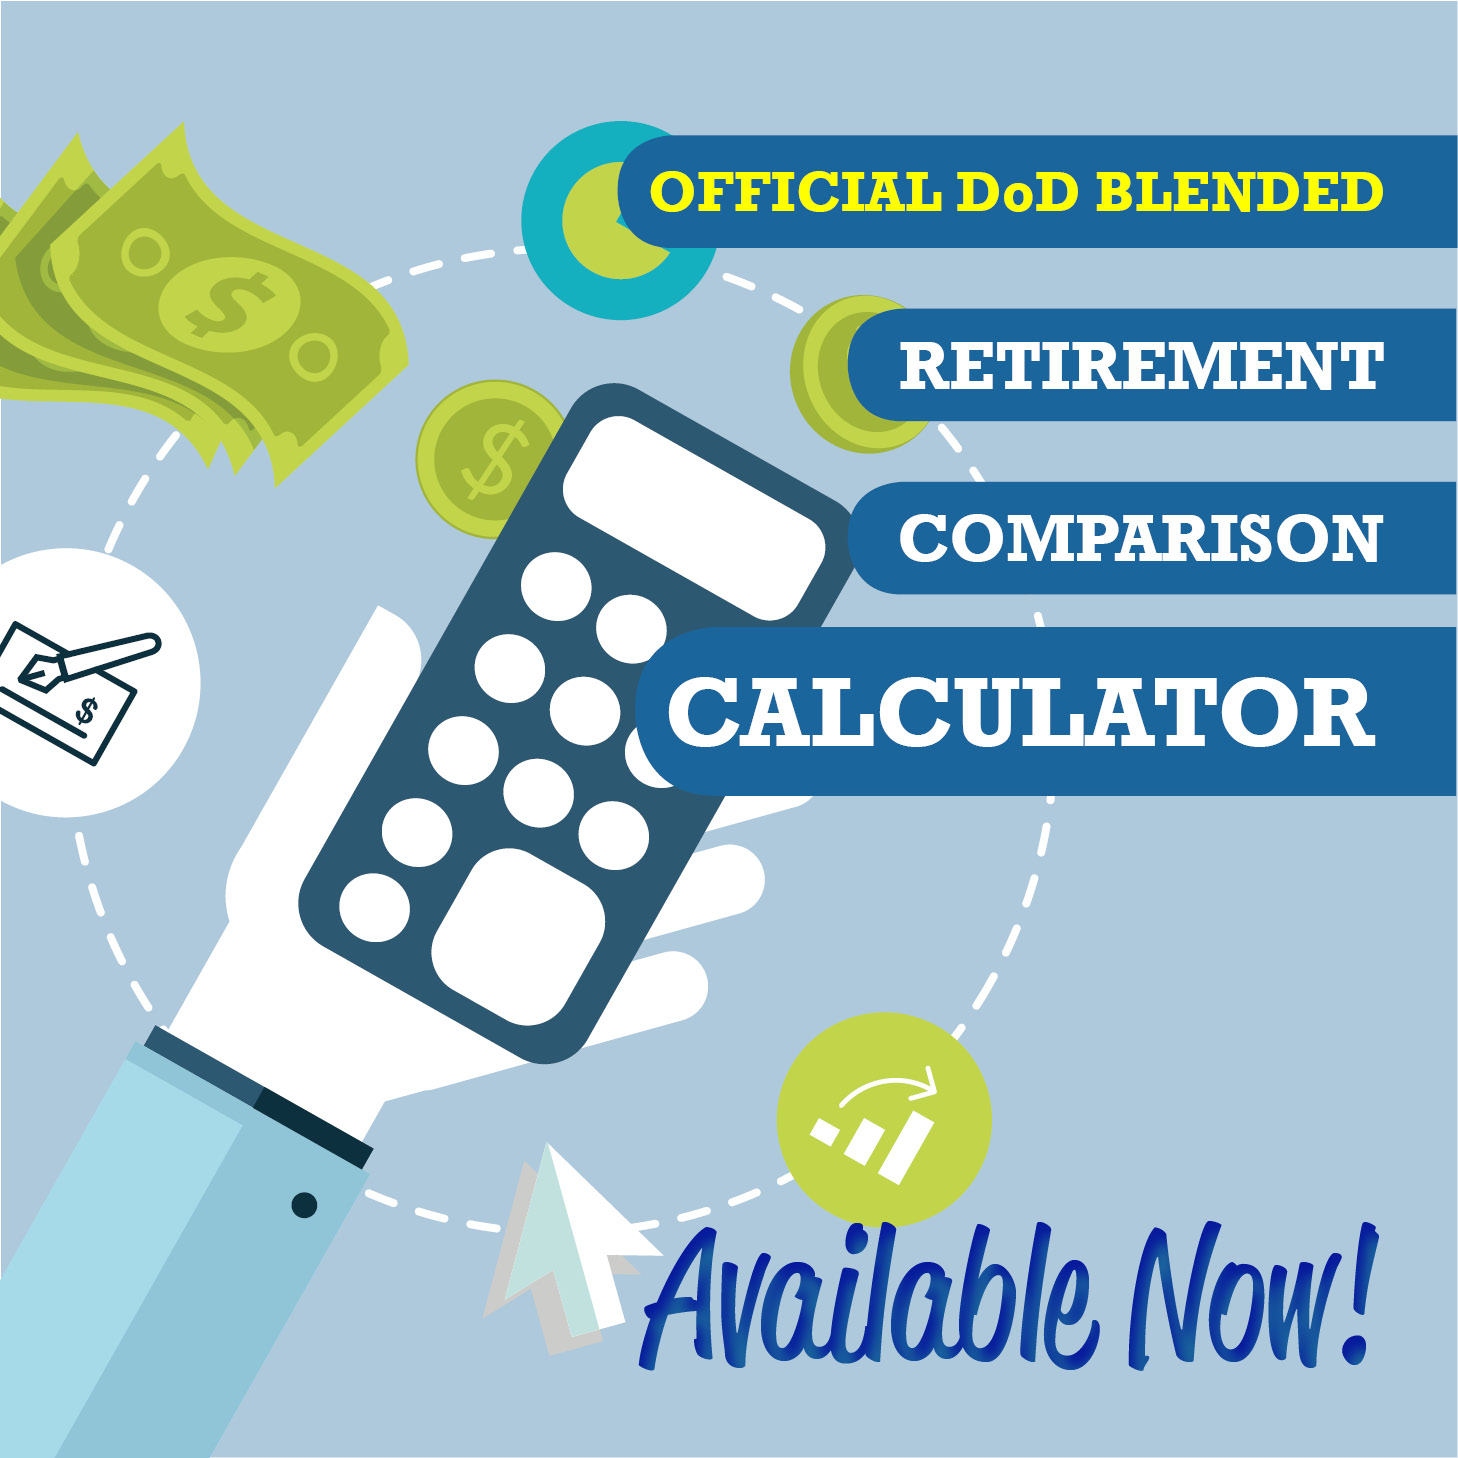 dod launches blended retirement system comparison calculator u s